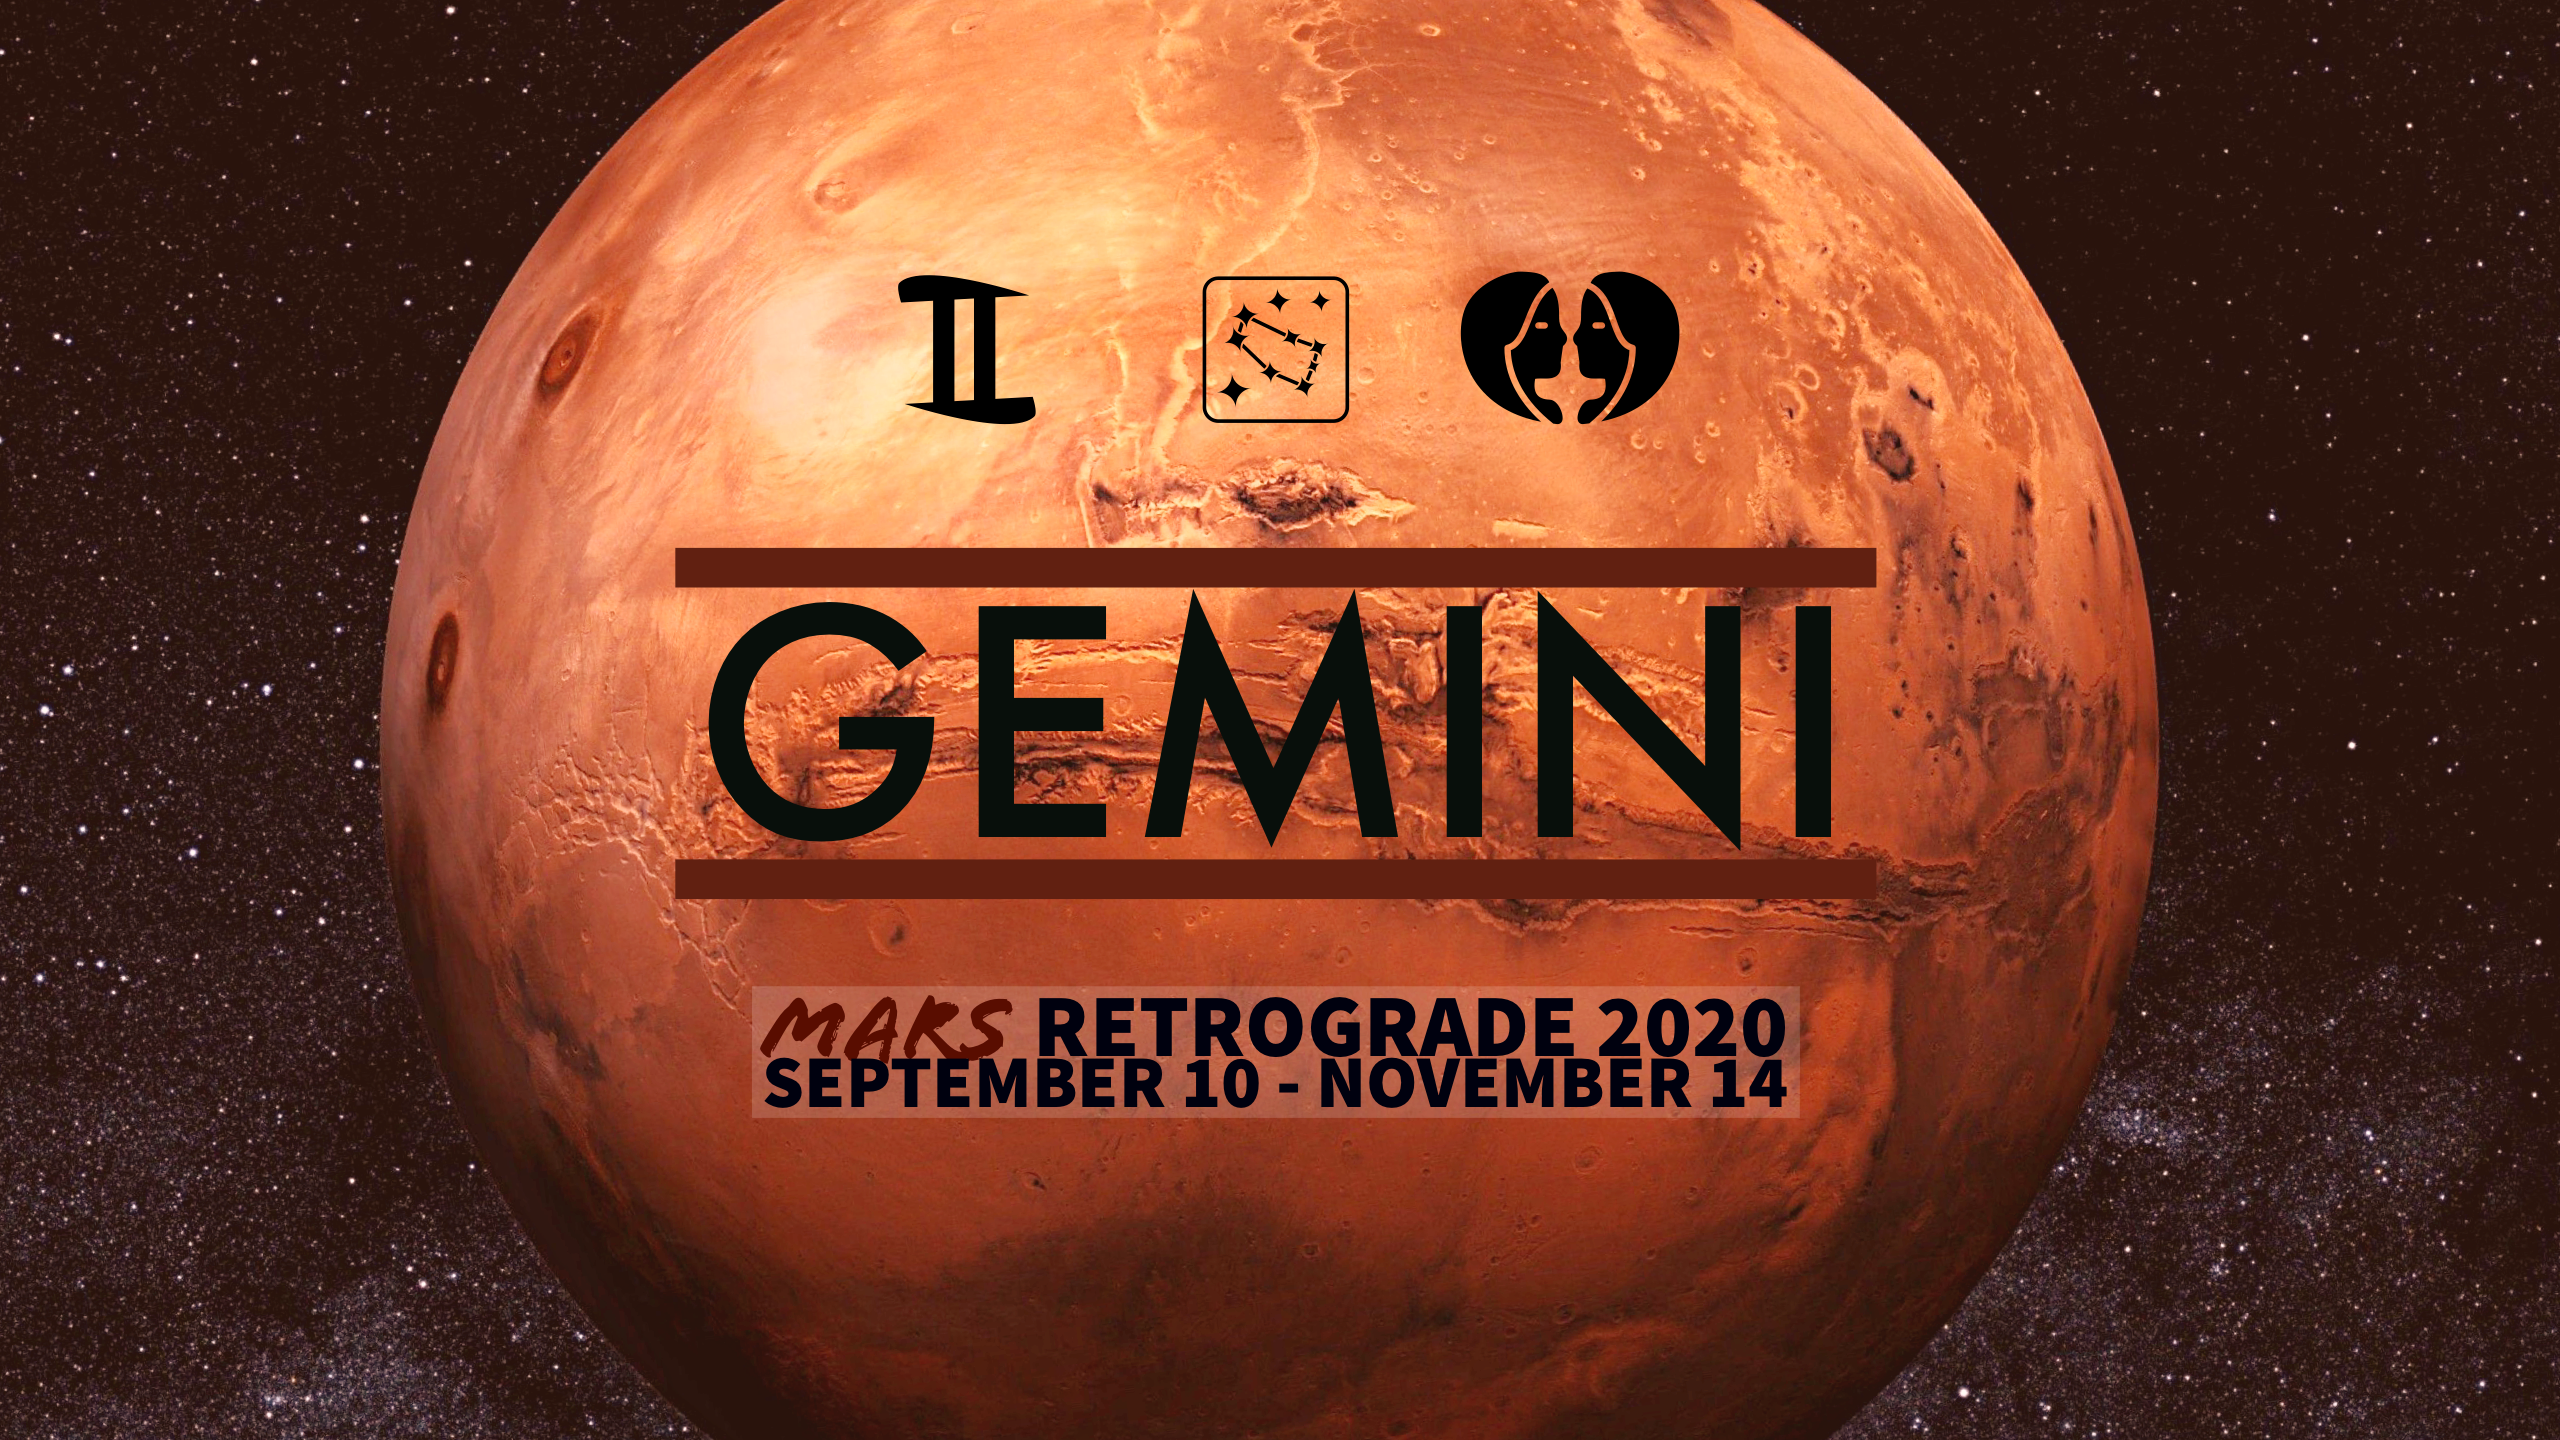 2020 Mars Retrograde:03 Gemini